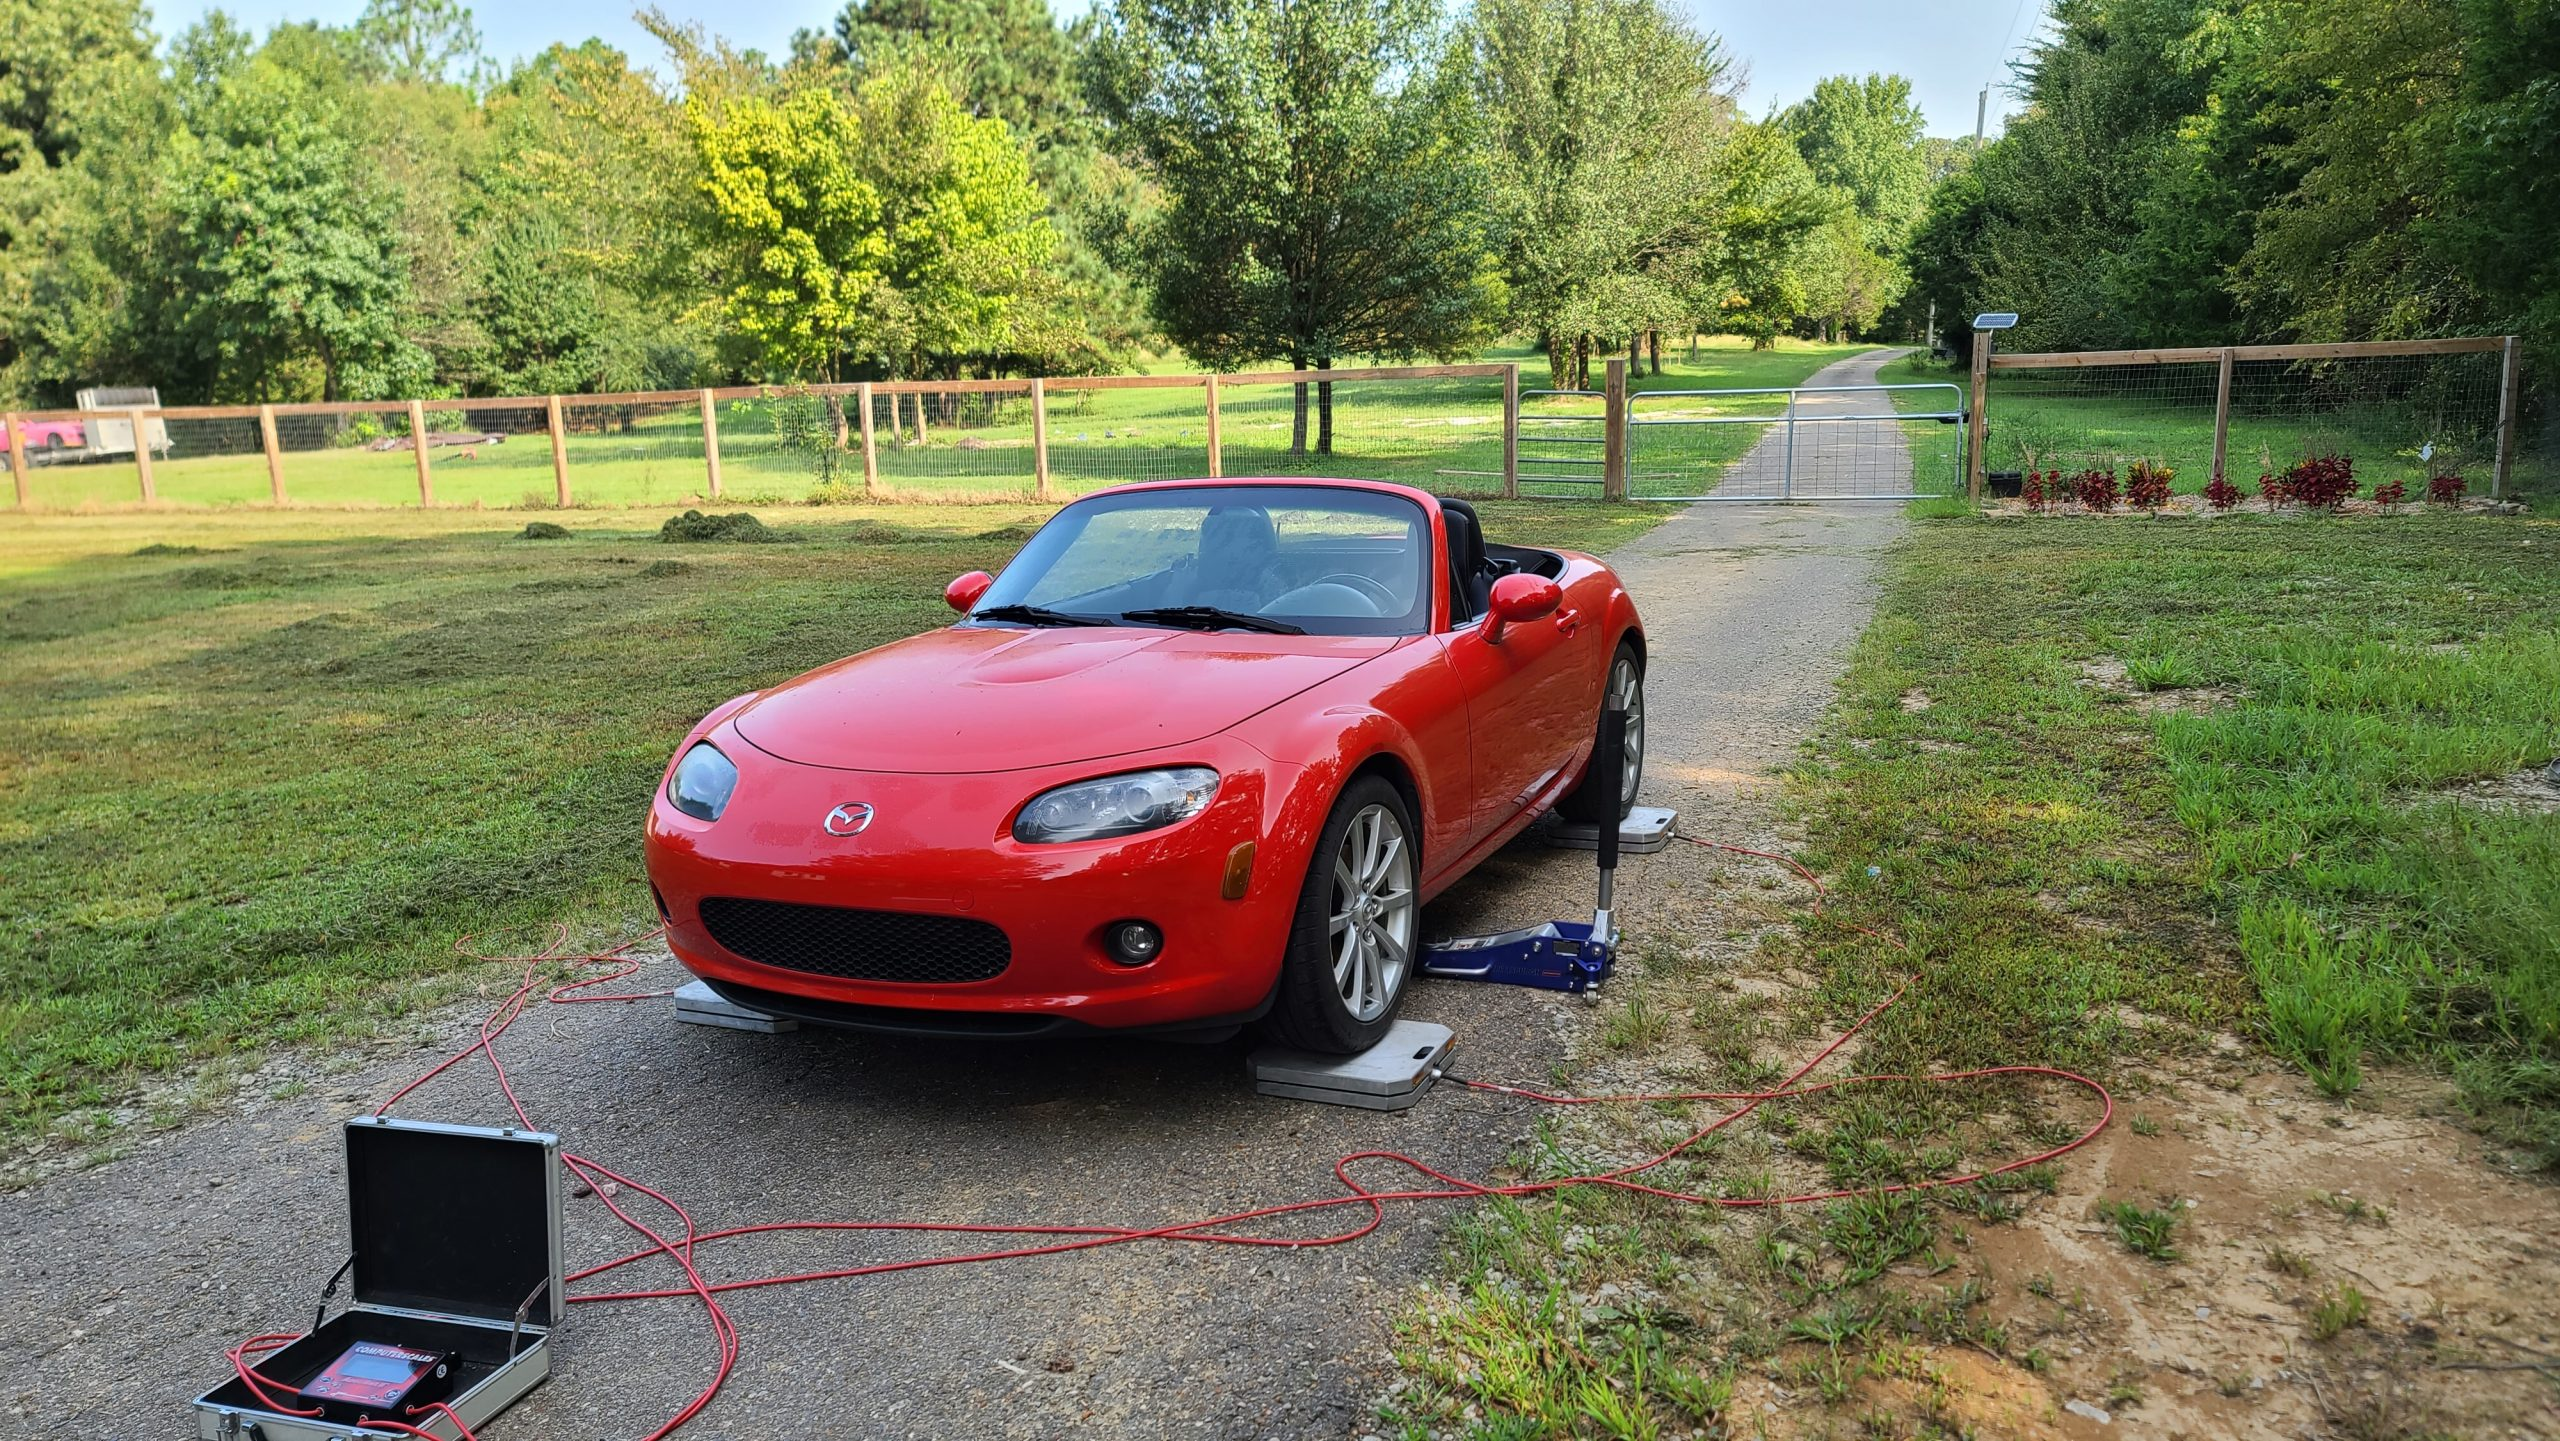 The NC MX-5 on longacre scales to calculate the overall weight of the car without driver and a full tank of gas.